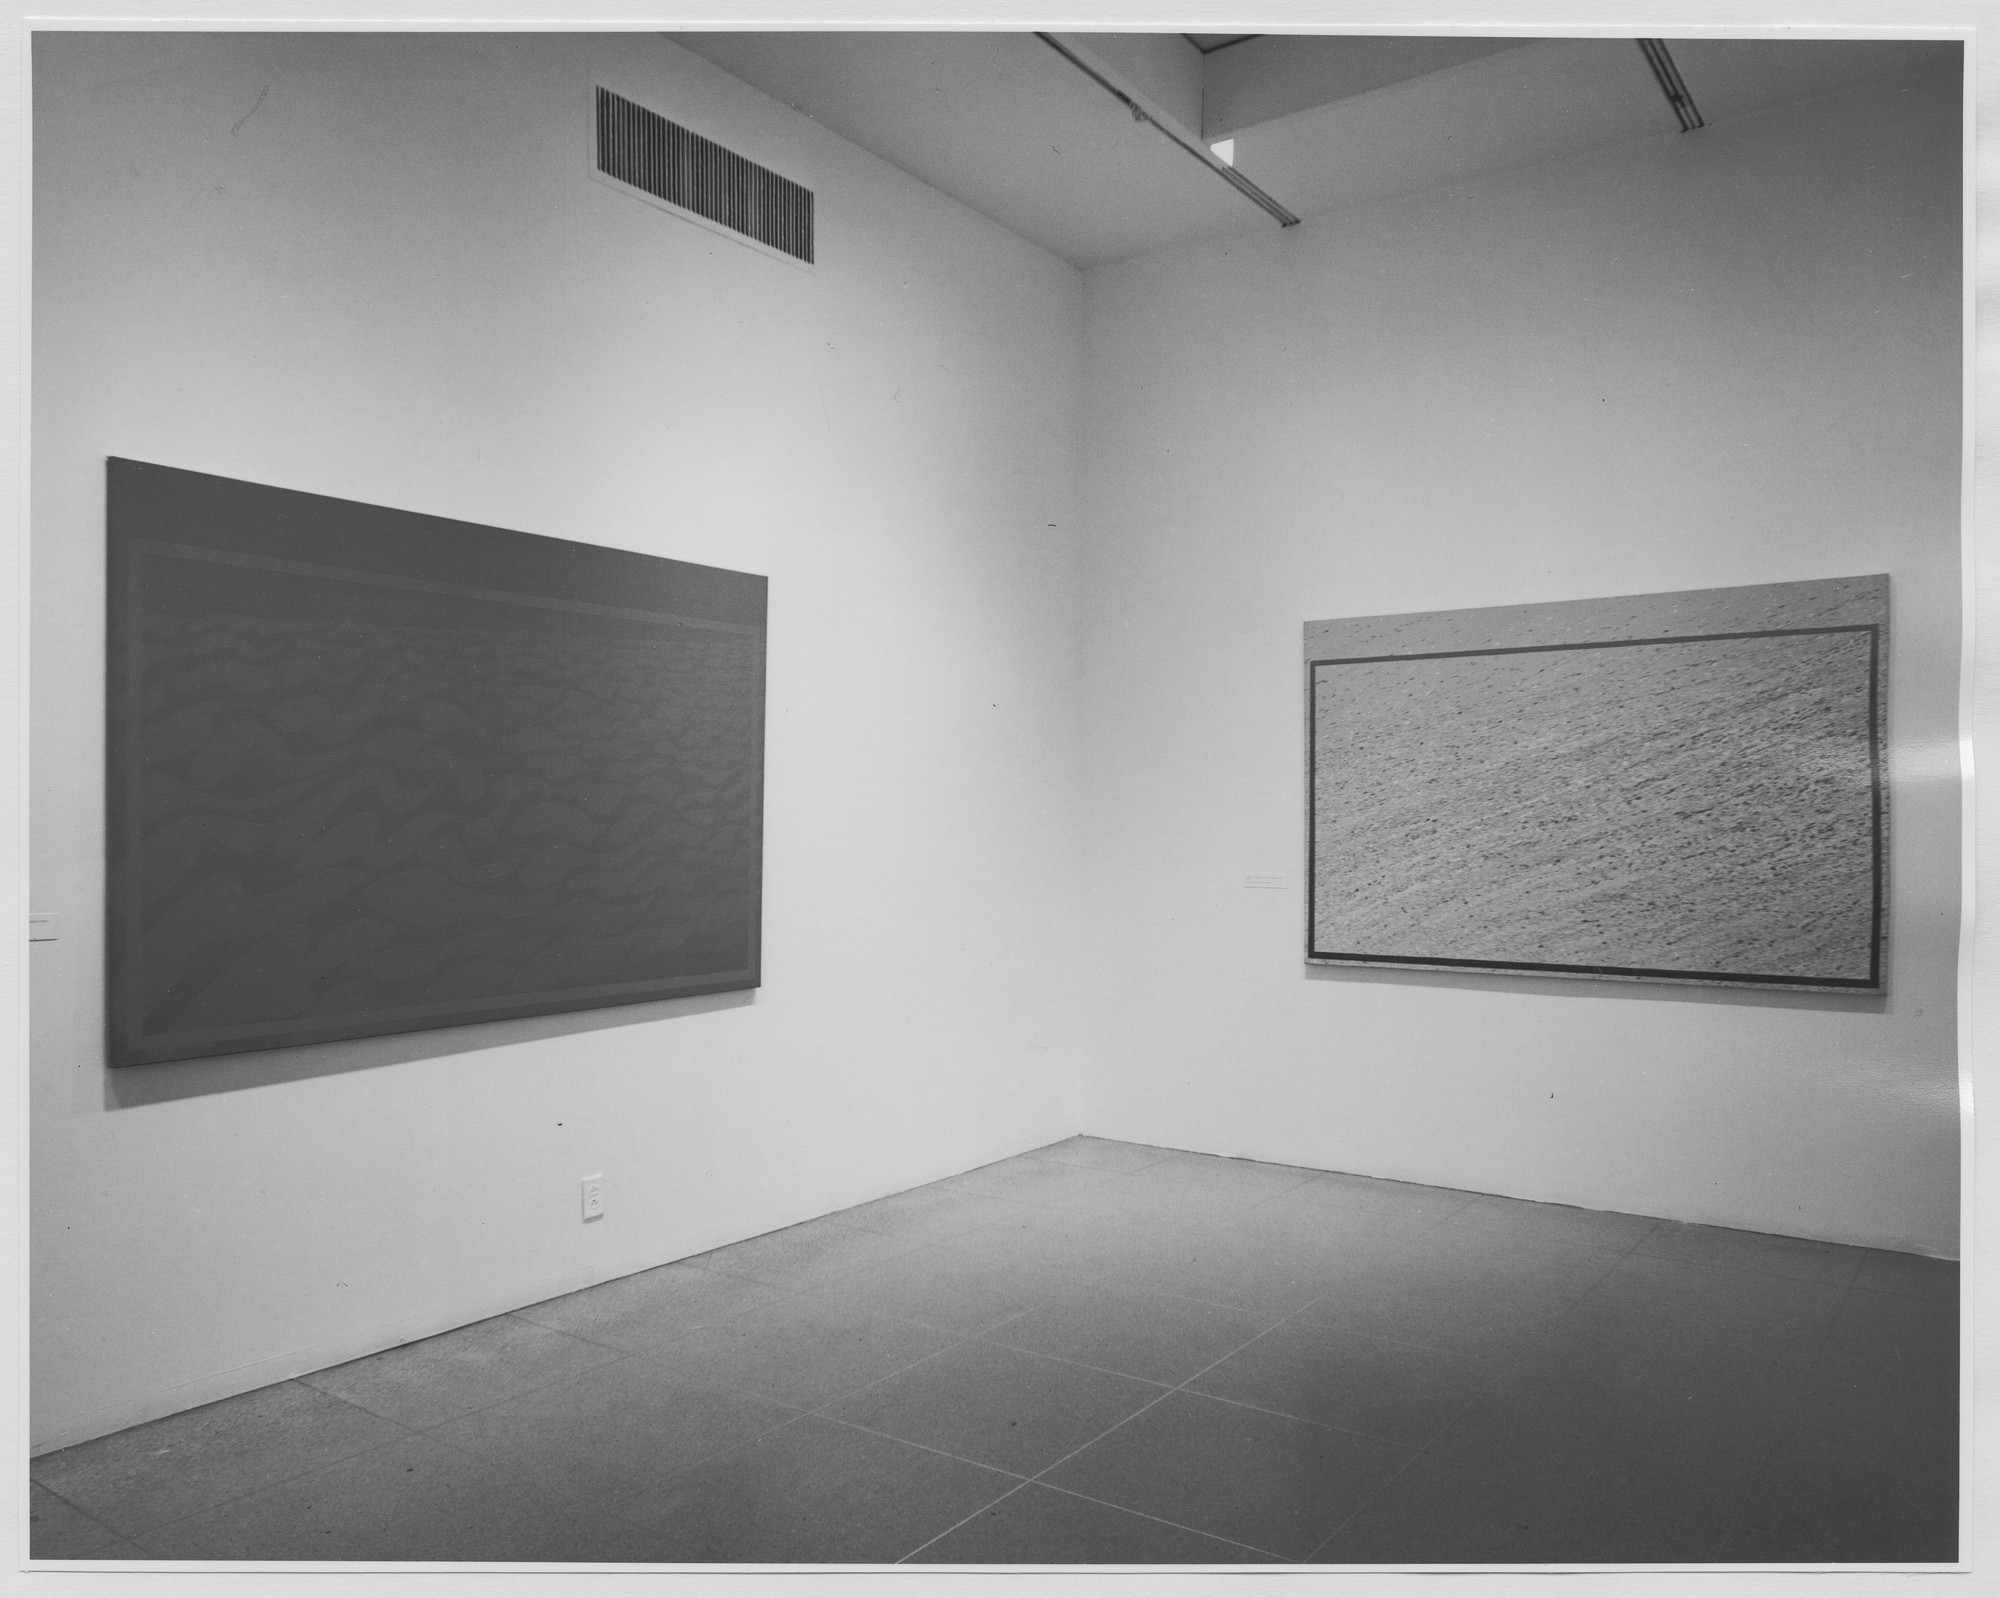 "Installation view of the exhibition, ""Projects: Emmanuel Pereire."" April 24, 1972–May 30, 1972. Photographic Archive. The Museum of Modern Art Archives, New York. IN1003.1. Photograph by James Mathews."